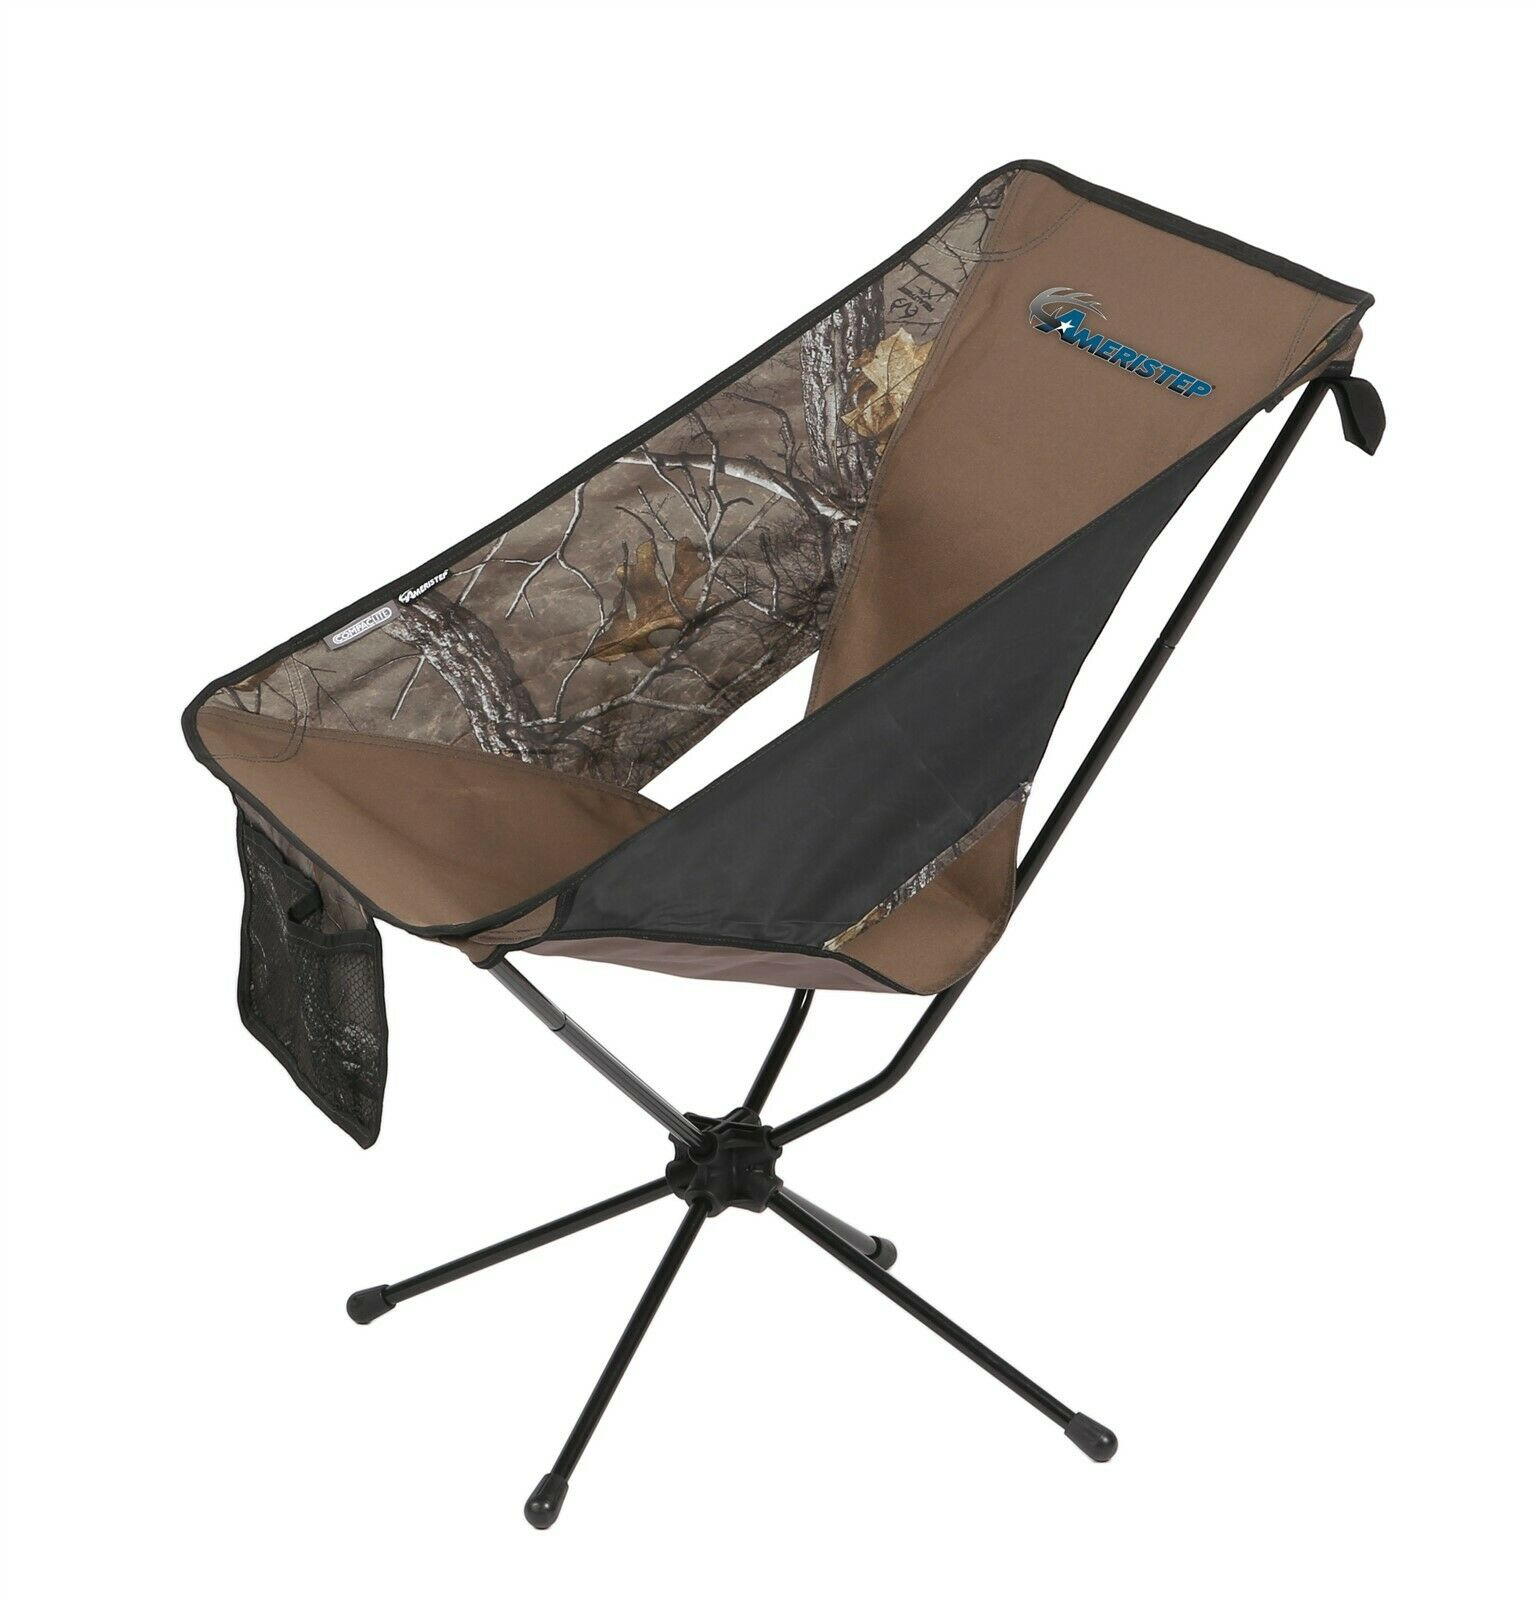 Ameristep 3RX1A025 Compact Portable Tellus Chair Realtree Xtra Camo NEW